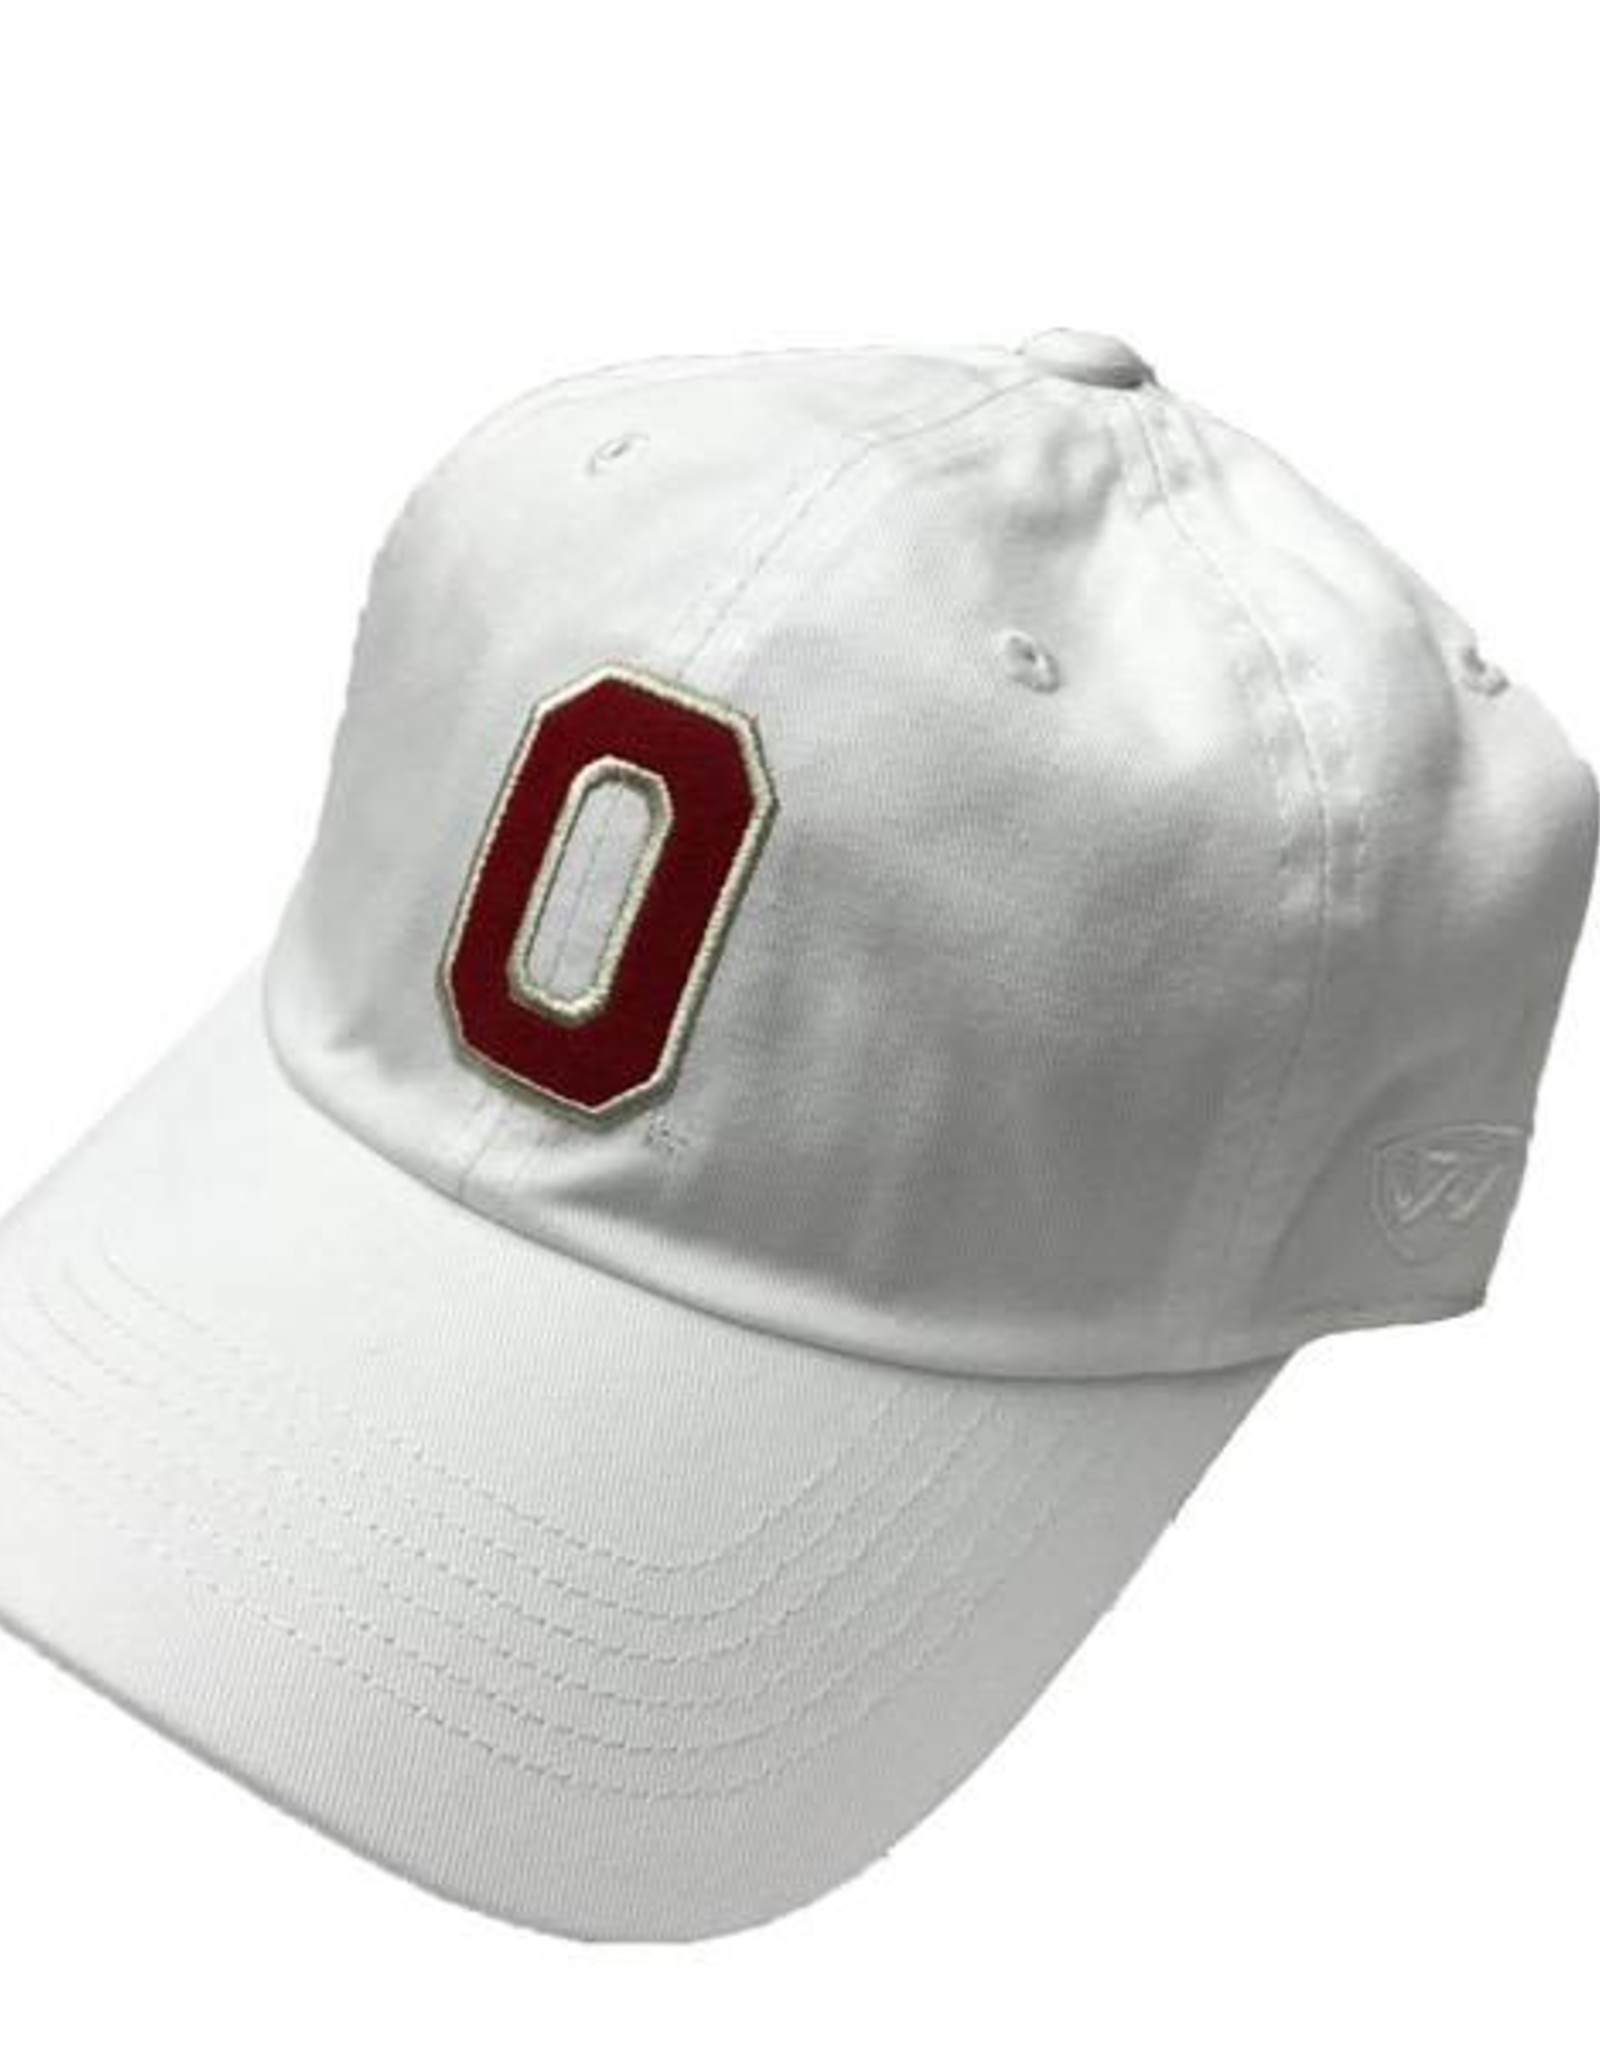 Top of the World TOW White Felt Block Vintage O Hat